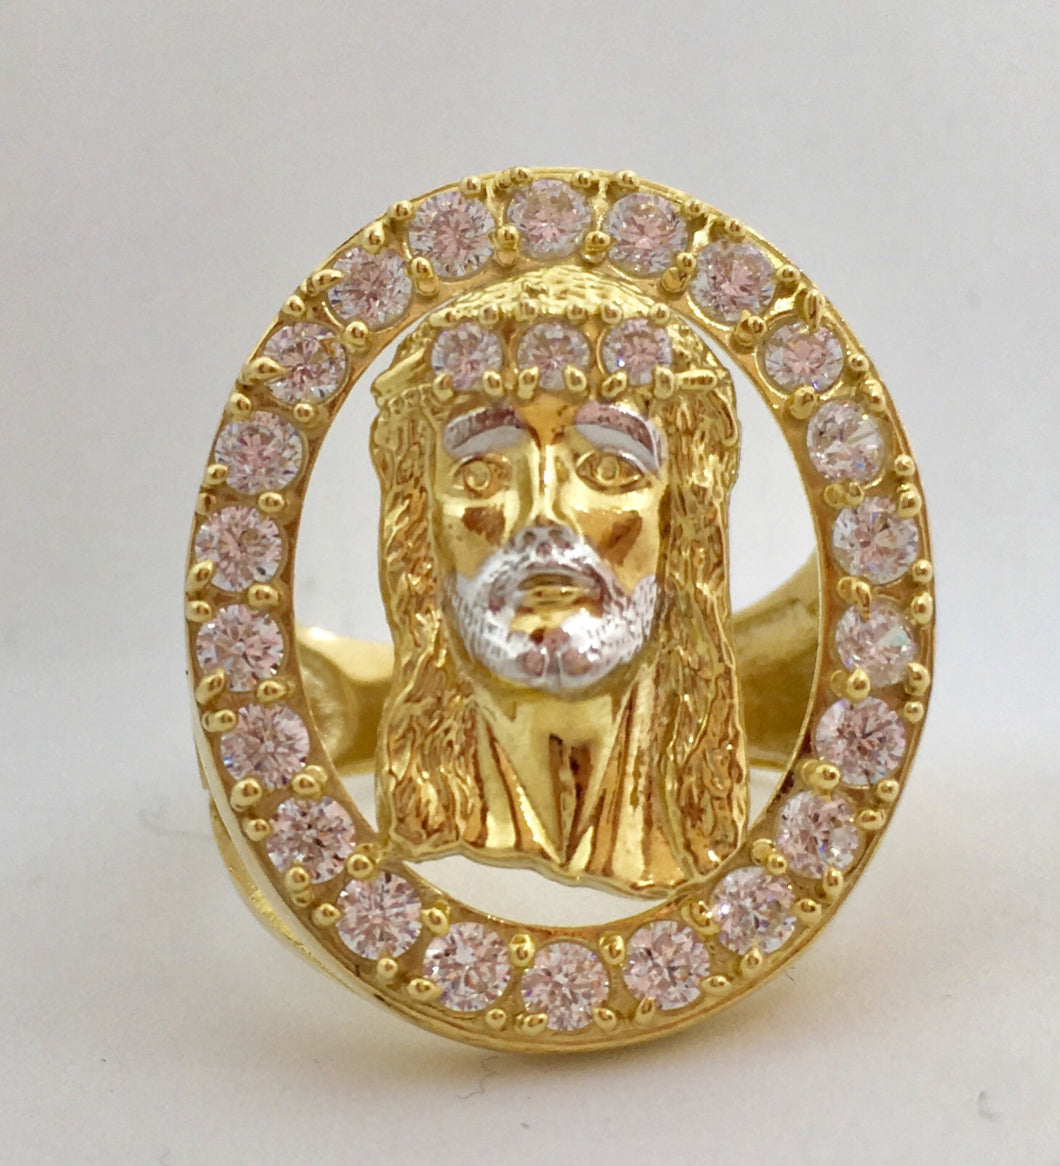 10K Jesus Head Ring with Crystal Halo